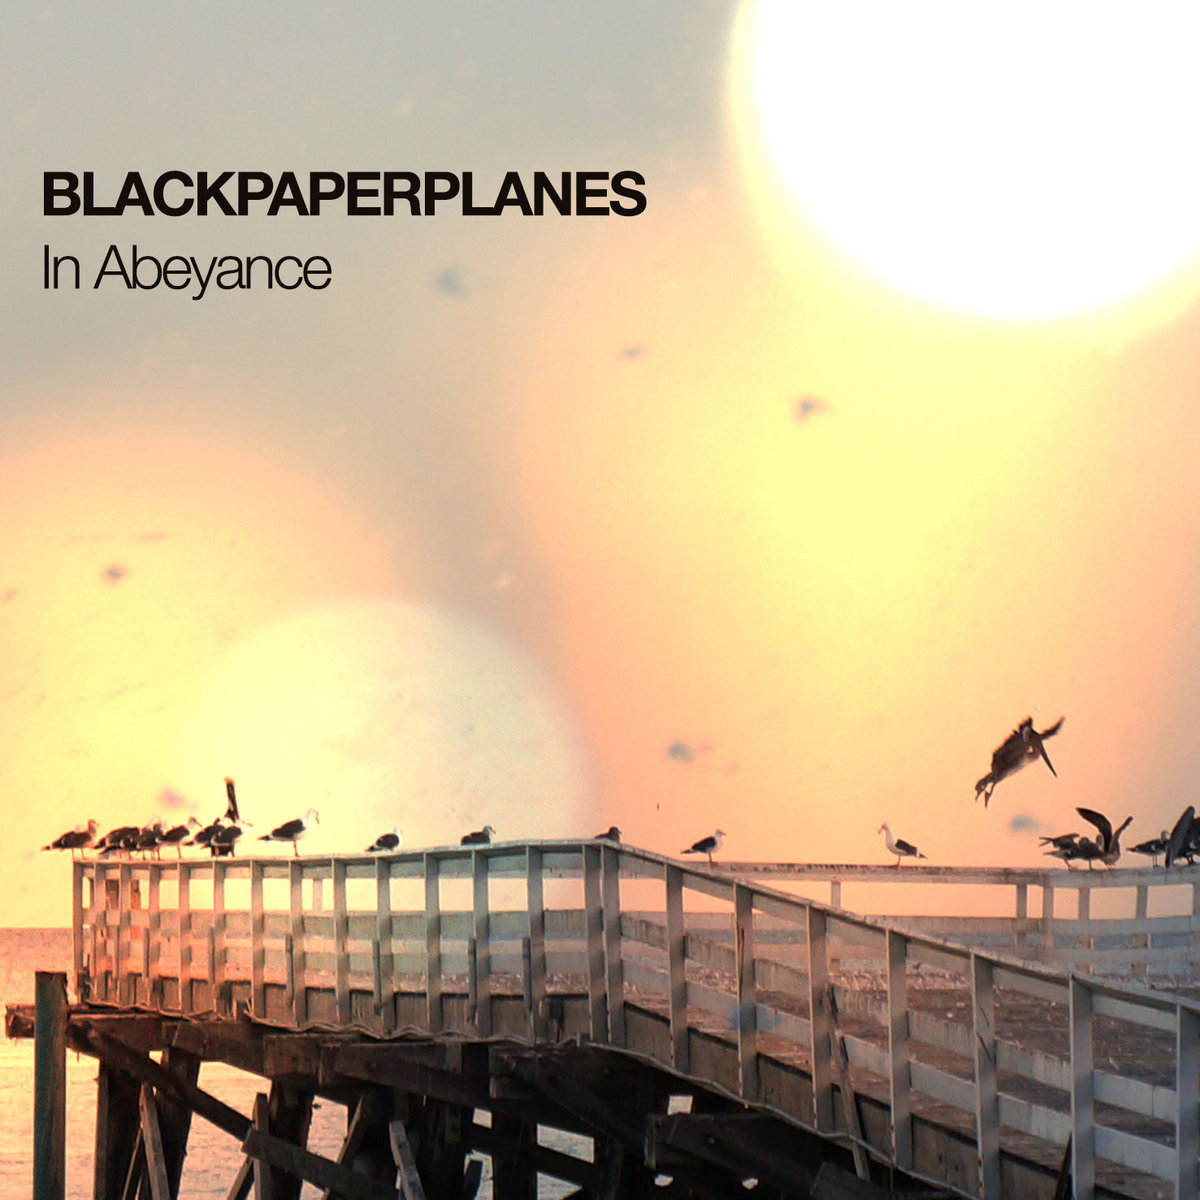 blackpaperplanes - Gaddafi @ 'In Abeyance' album (experimental, rock)